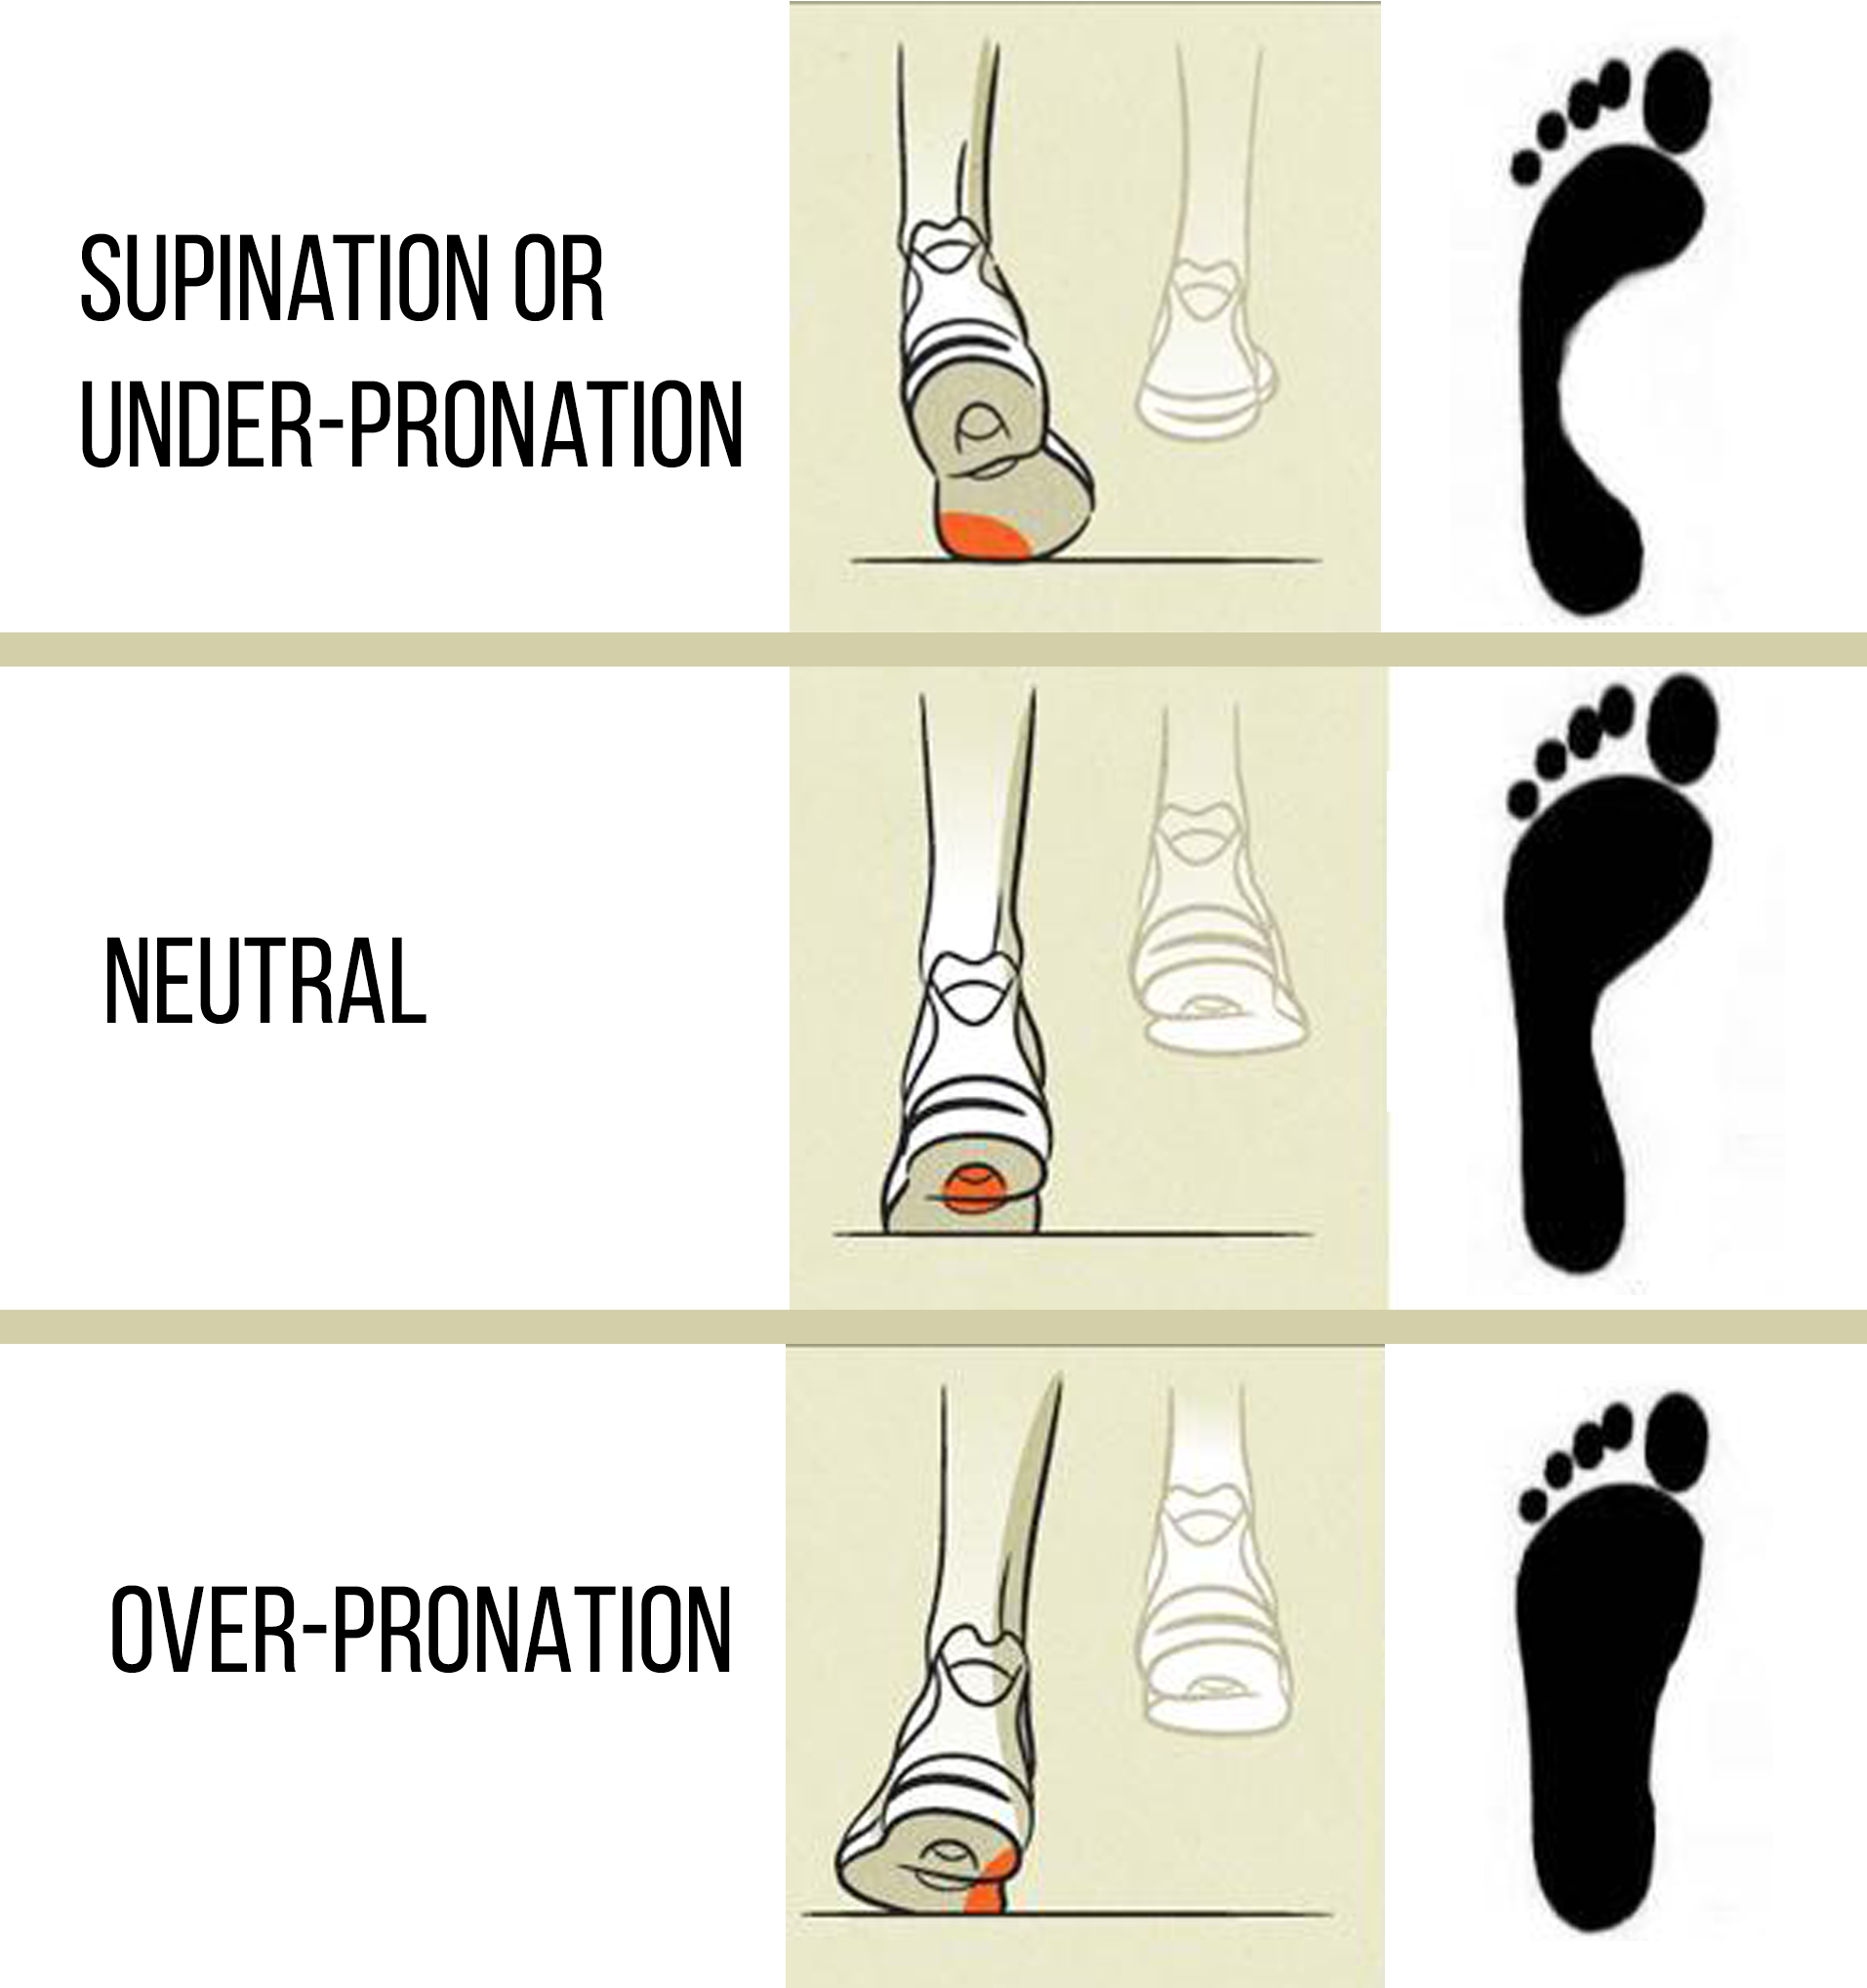 foot massage therapy diagram corsa d wiring over pronation and under gym monk pinterest